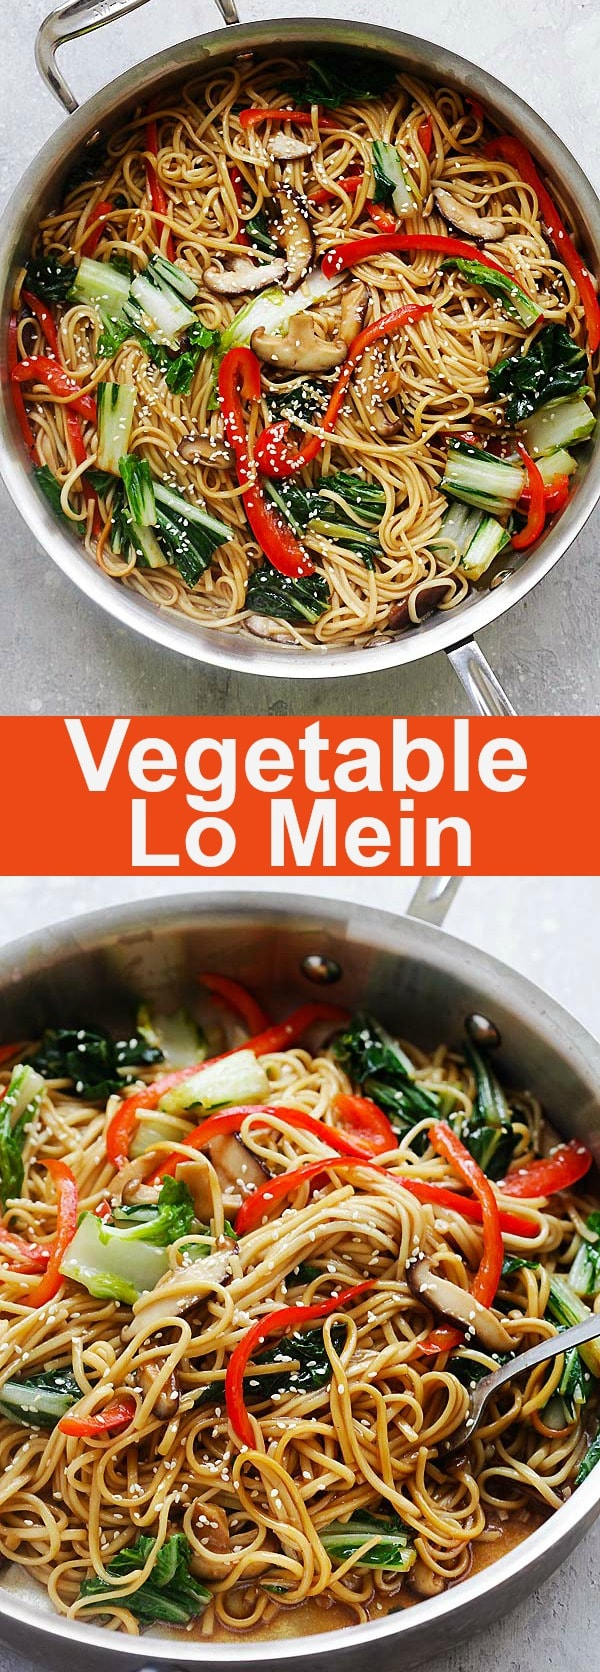 Vegetable Lo Mein - easy and healthy Lo Mein noodles with bok choy, bell peppers and mushrooms. The soft and silky noodles are coated with delicious Lo Mein Sauce that is better than Chinese restaurants or takeout | rasamalaysia.com